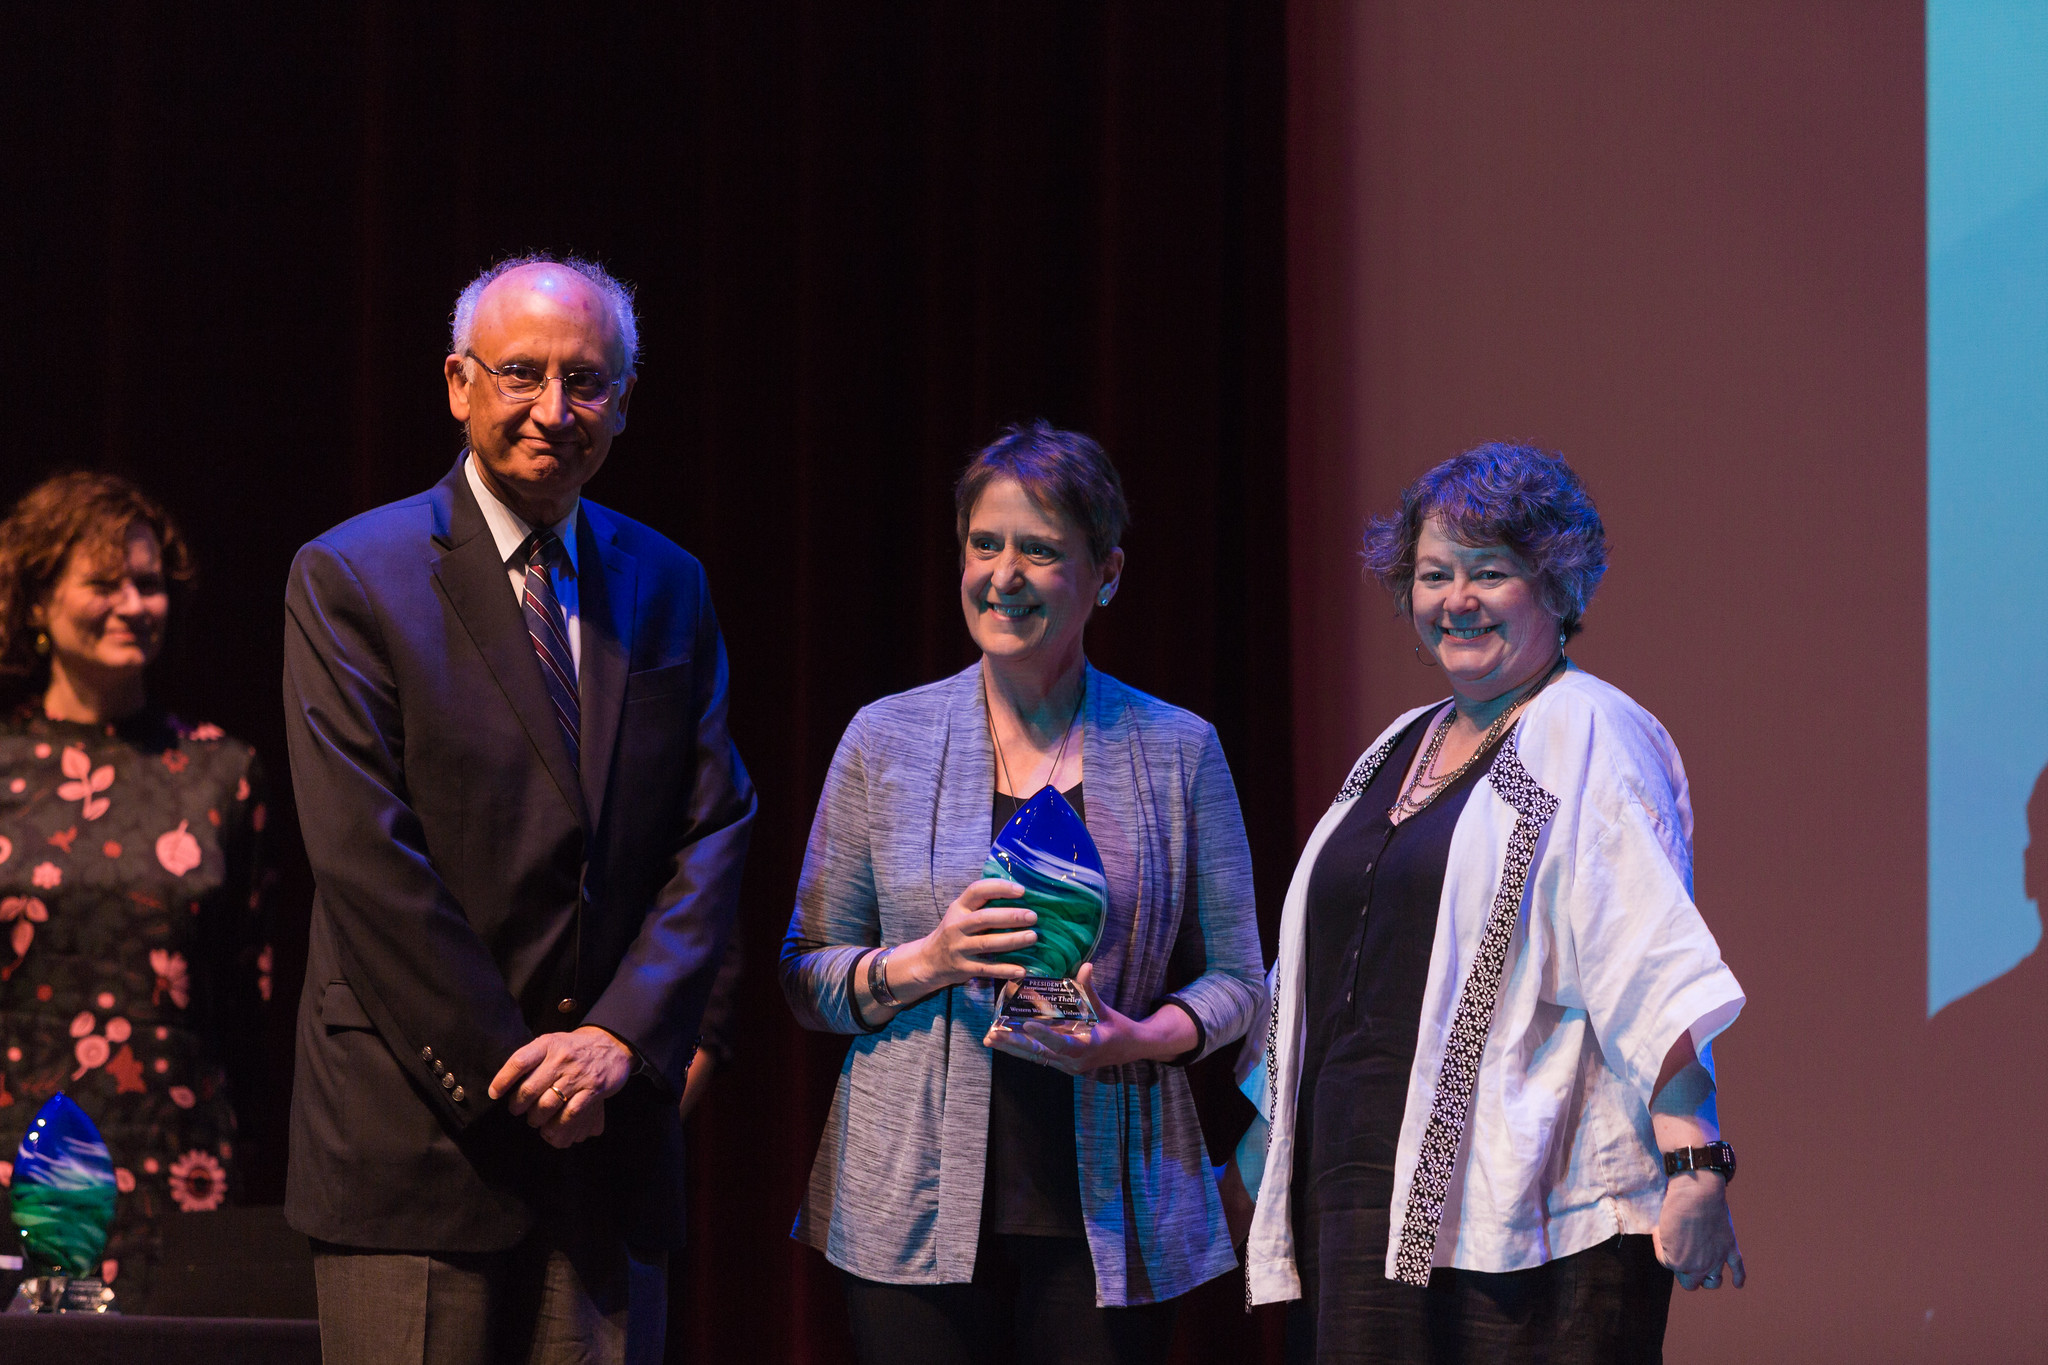 the Counseling Center's Anne Marie Theiler accepts an award at last year's Employee Recognition Ceremony. All three staff and faculty awards events have been combined into one event for the first time, the Celebration of Excellence.